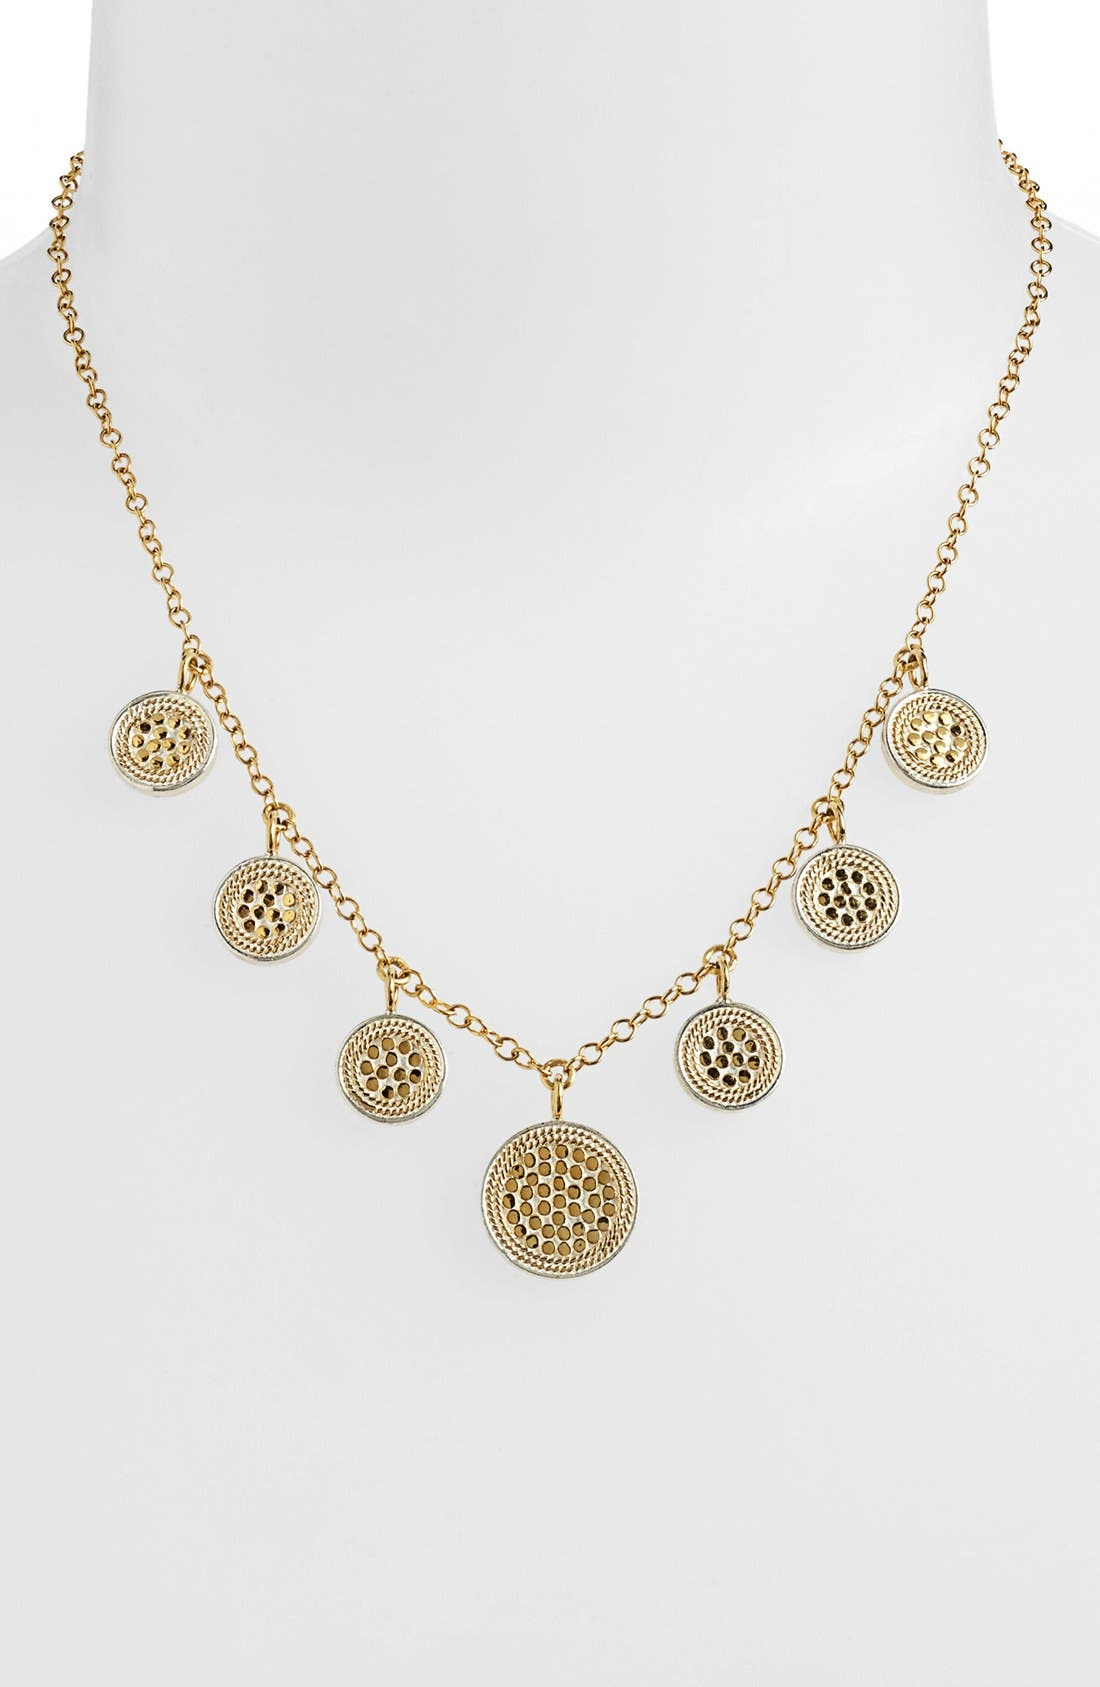 Main Image - Anna Beck 'Gili' 7-Disc Charm Necklace